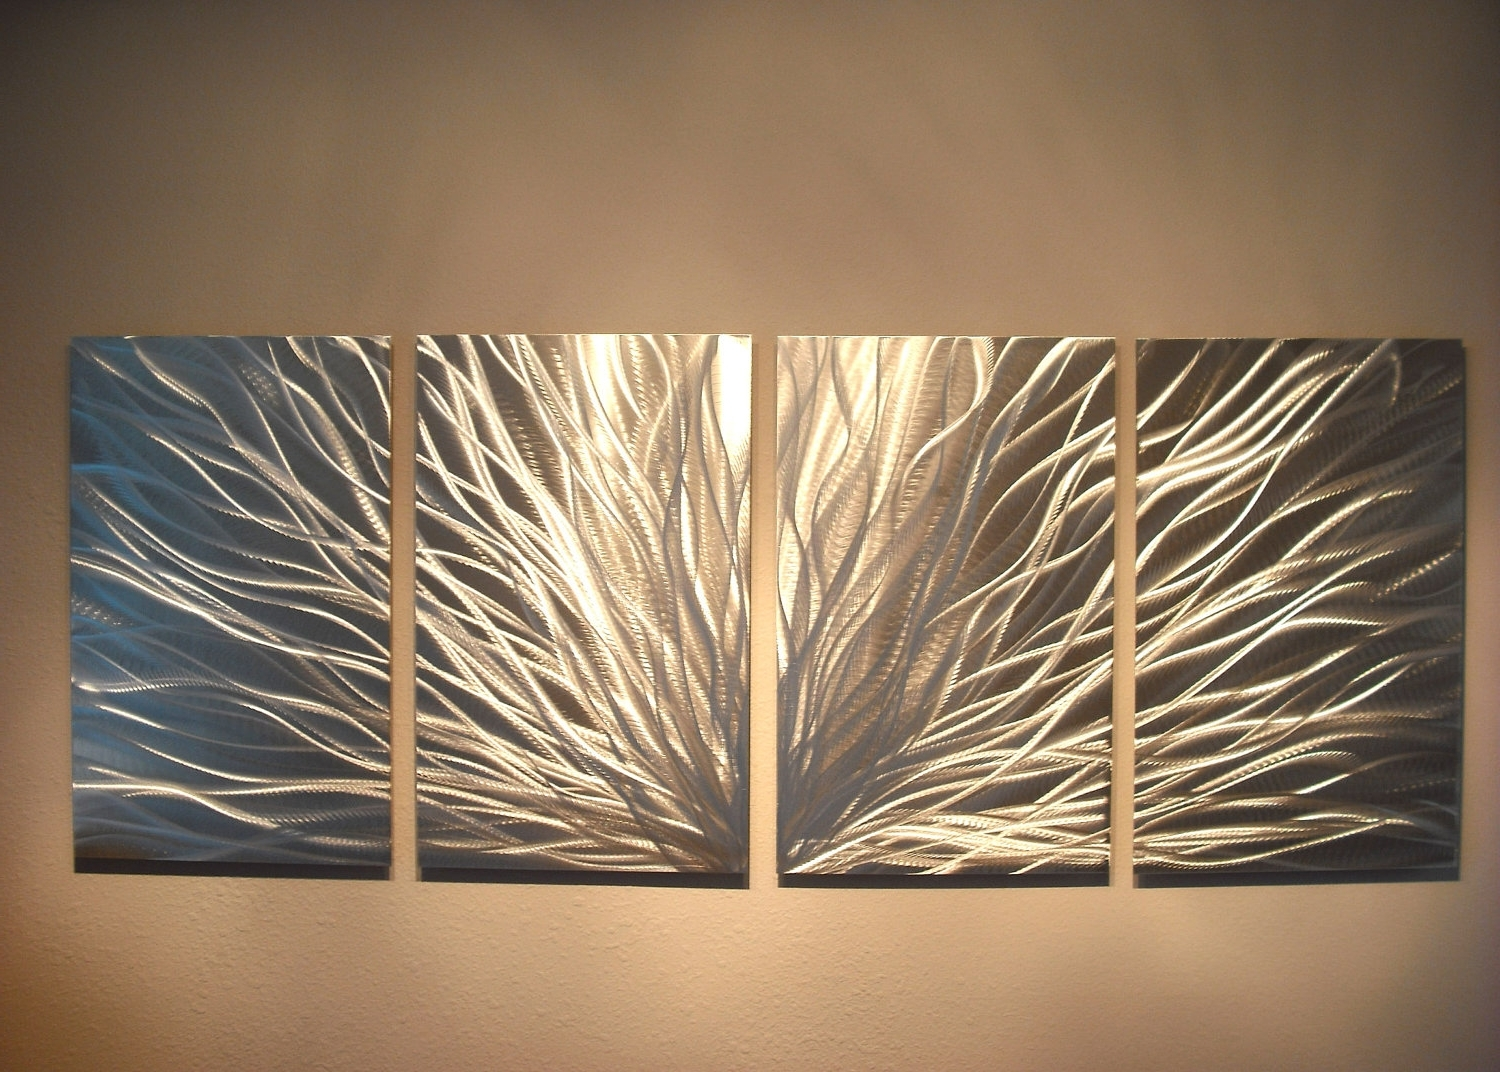 Newest Radiance – Abstract Metal Wall Art Contemporary Modern Decor Regarding Abstract Metal Sculpture Wall Art (View 12 of 15)